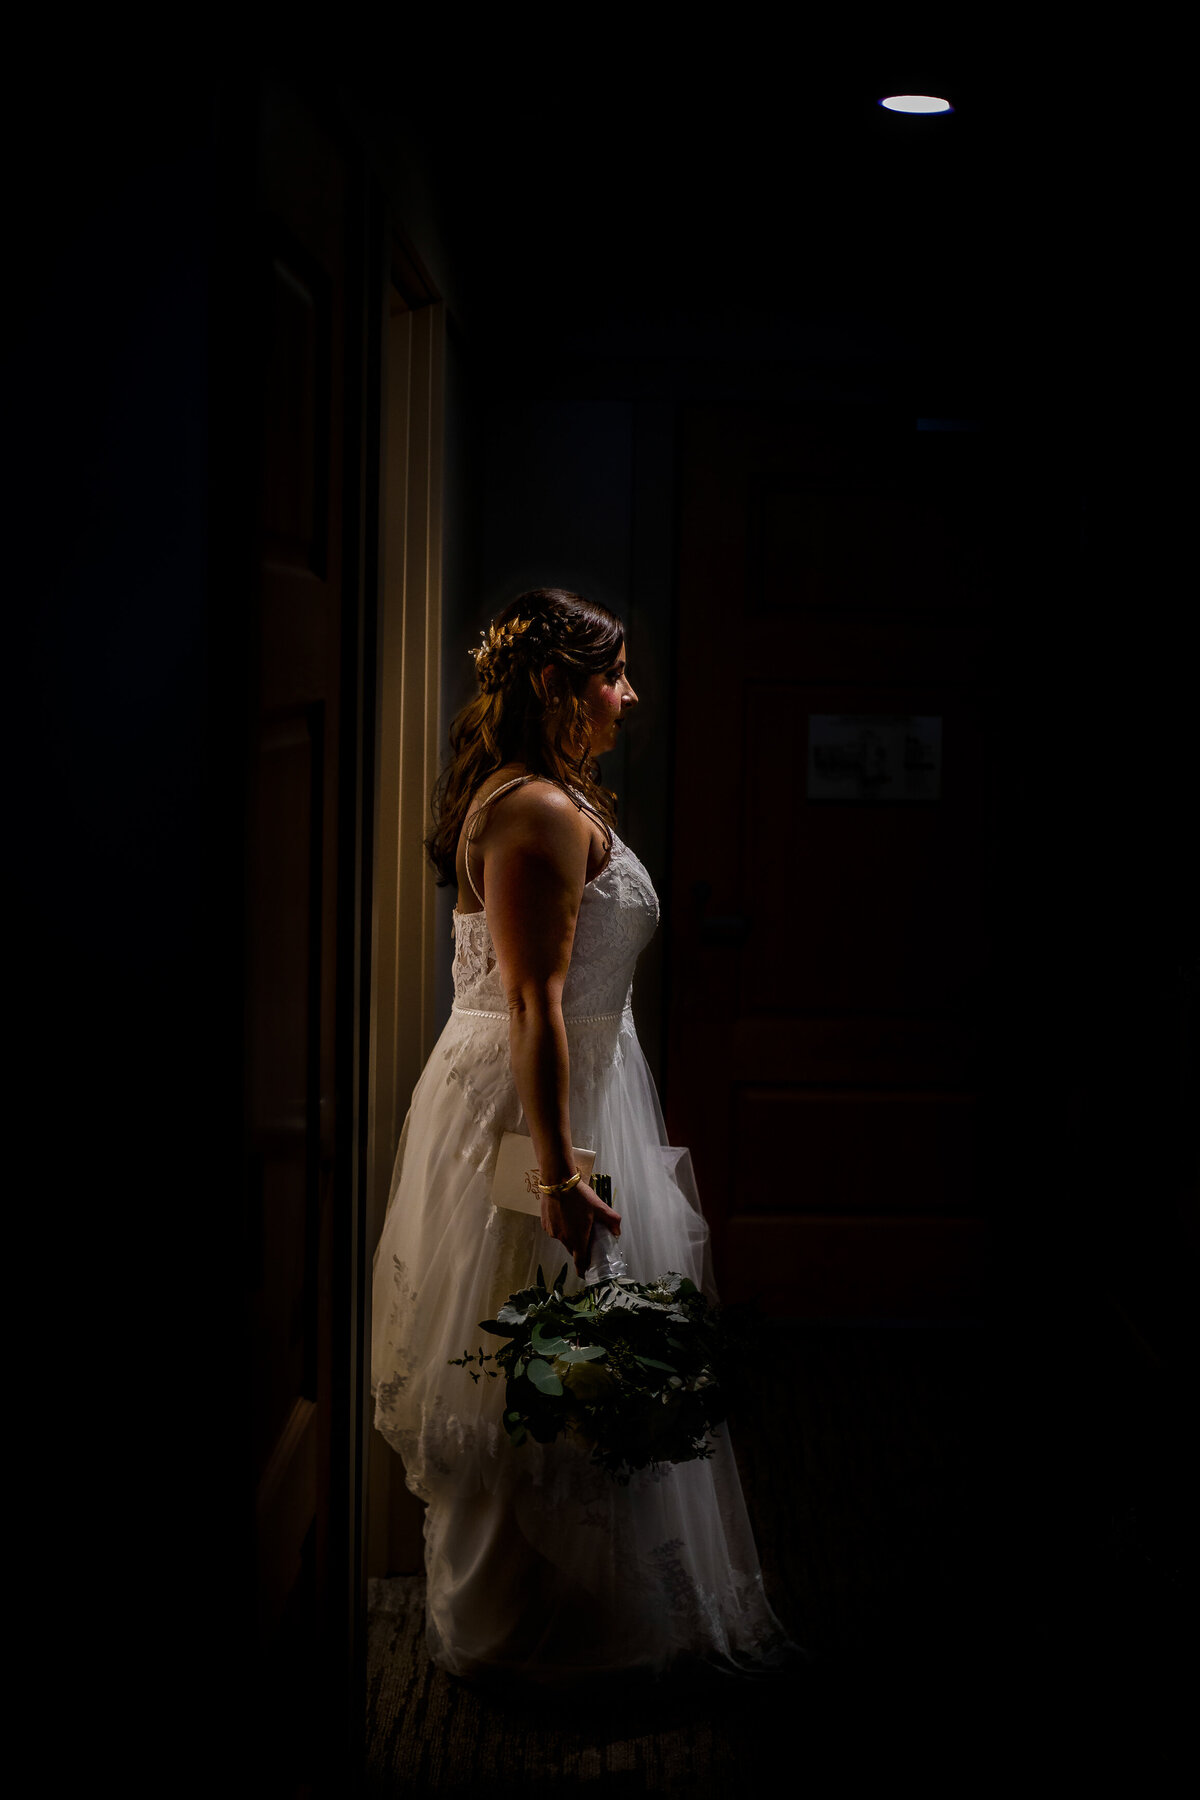 Bride-portrait-lace-dress-adirondack-wedding-andy-madea-photography-adirondack-wedding-photographer